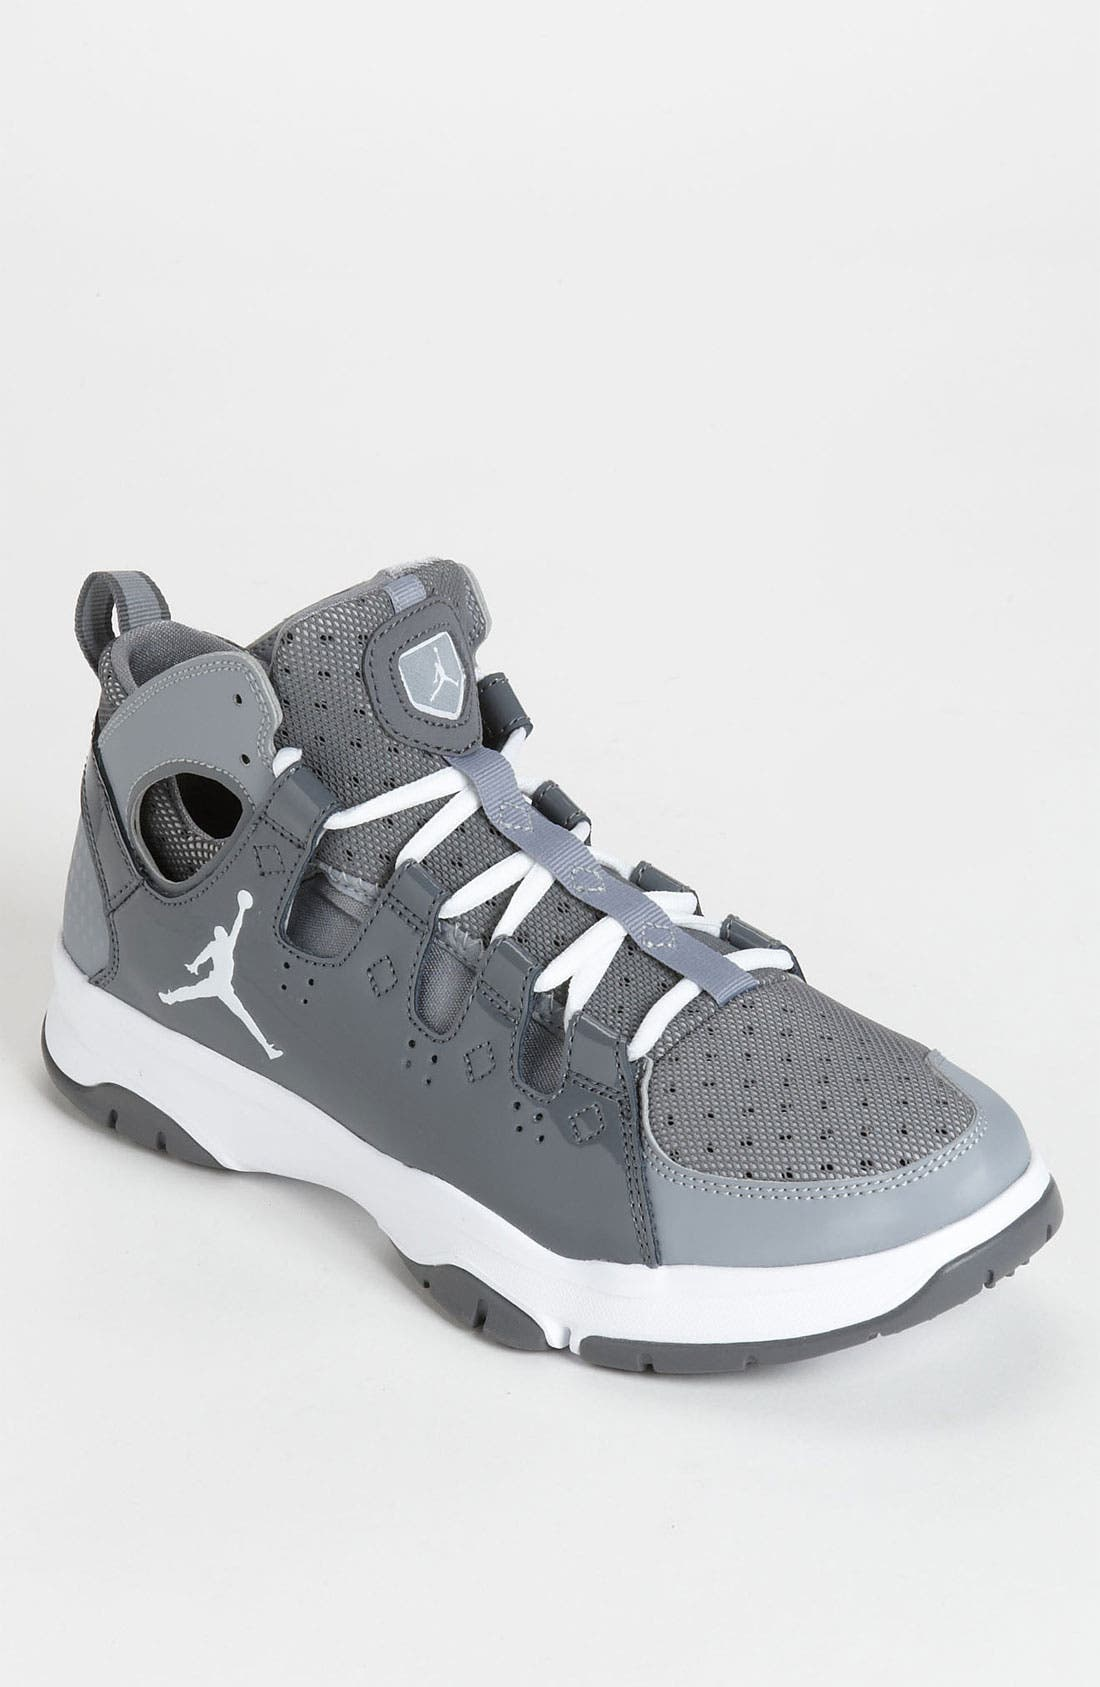 Alternate Image 1 Selected - Nike 'Jordan Legend TR' Basketball Shoe (Men)